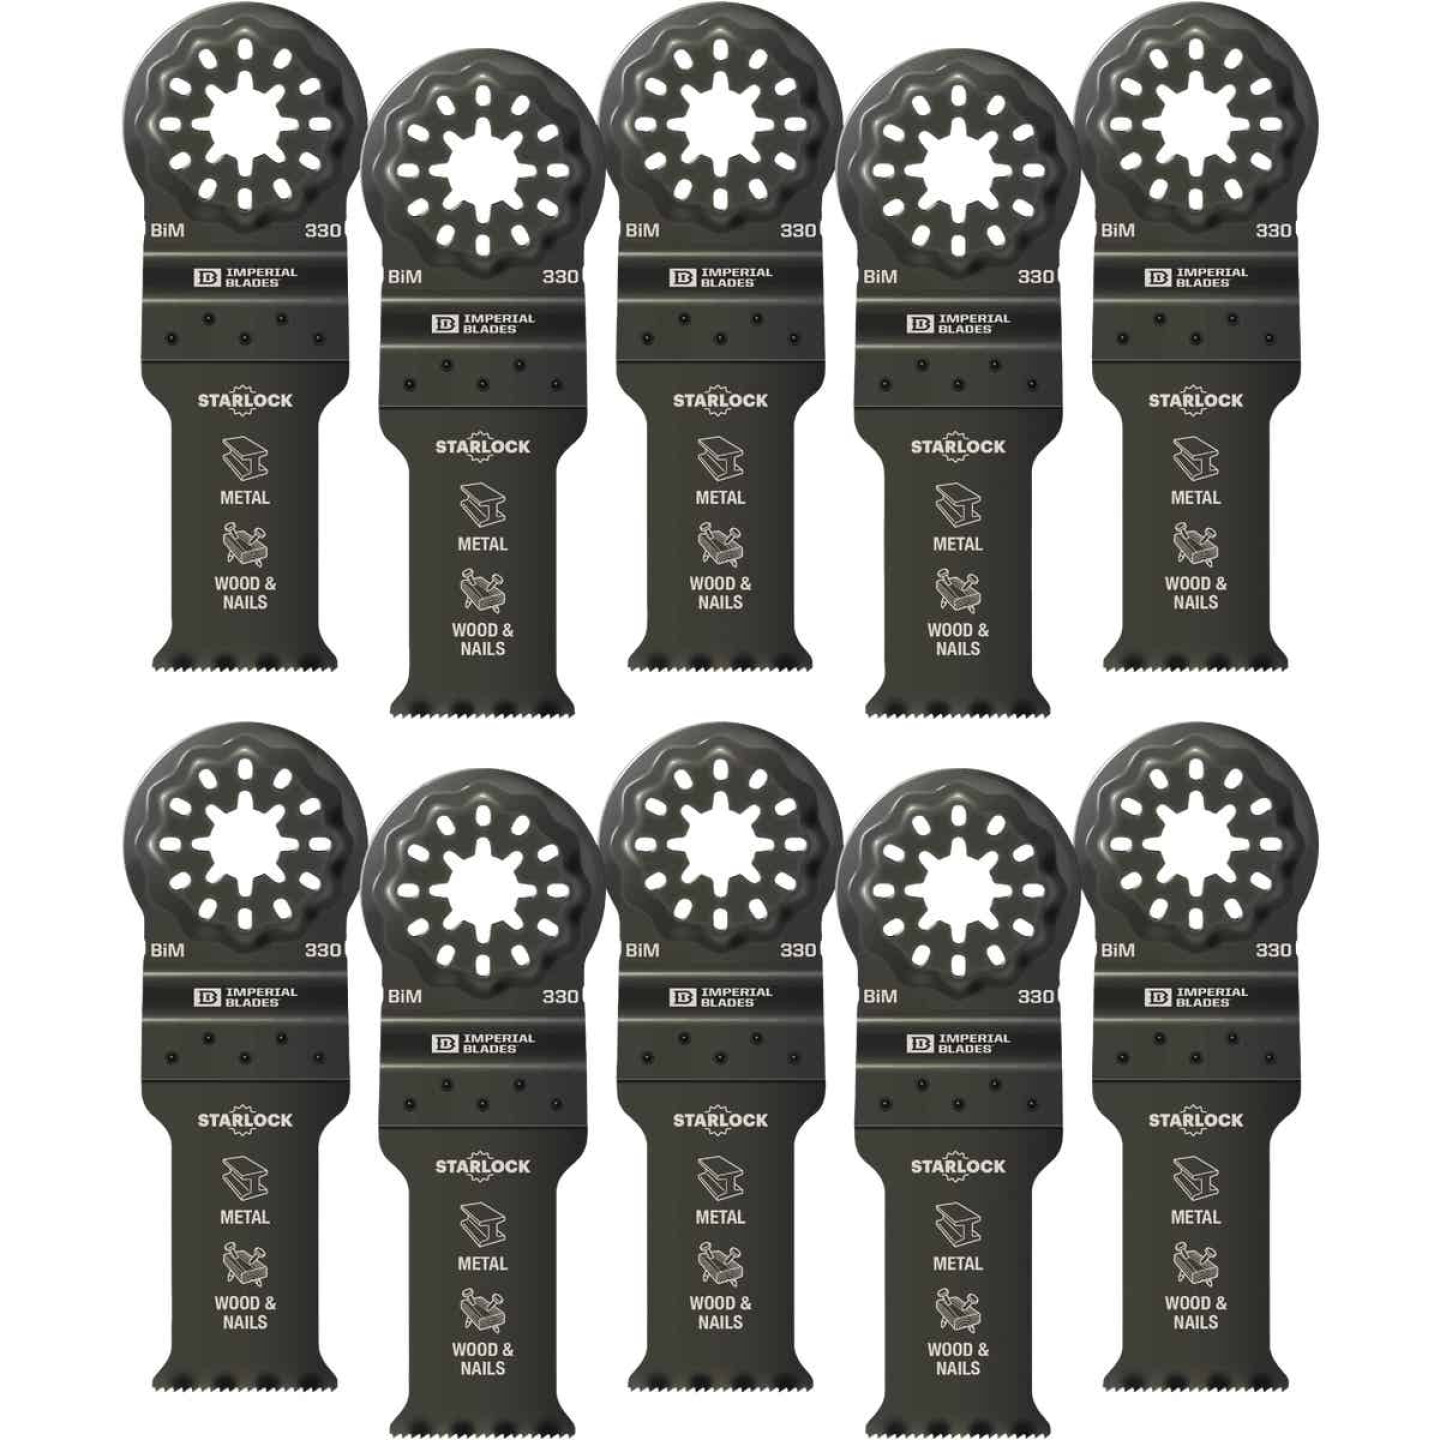 Imperial Blades Starlock 1-1/8 In. 18 TPI Metal/Wood Oscillating Blade (10-Pack) Image 1